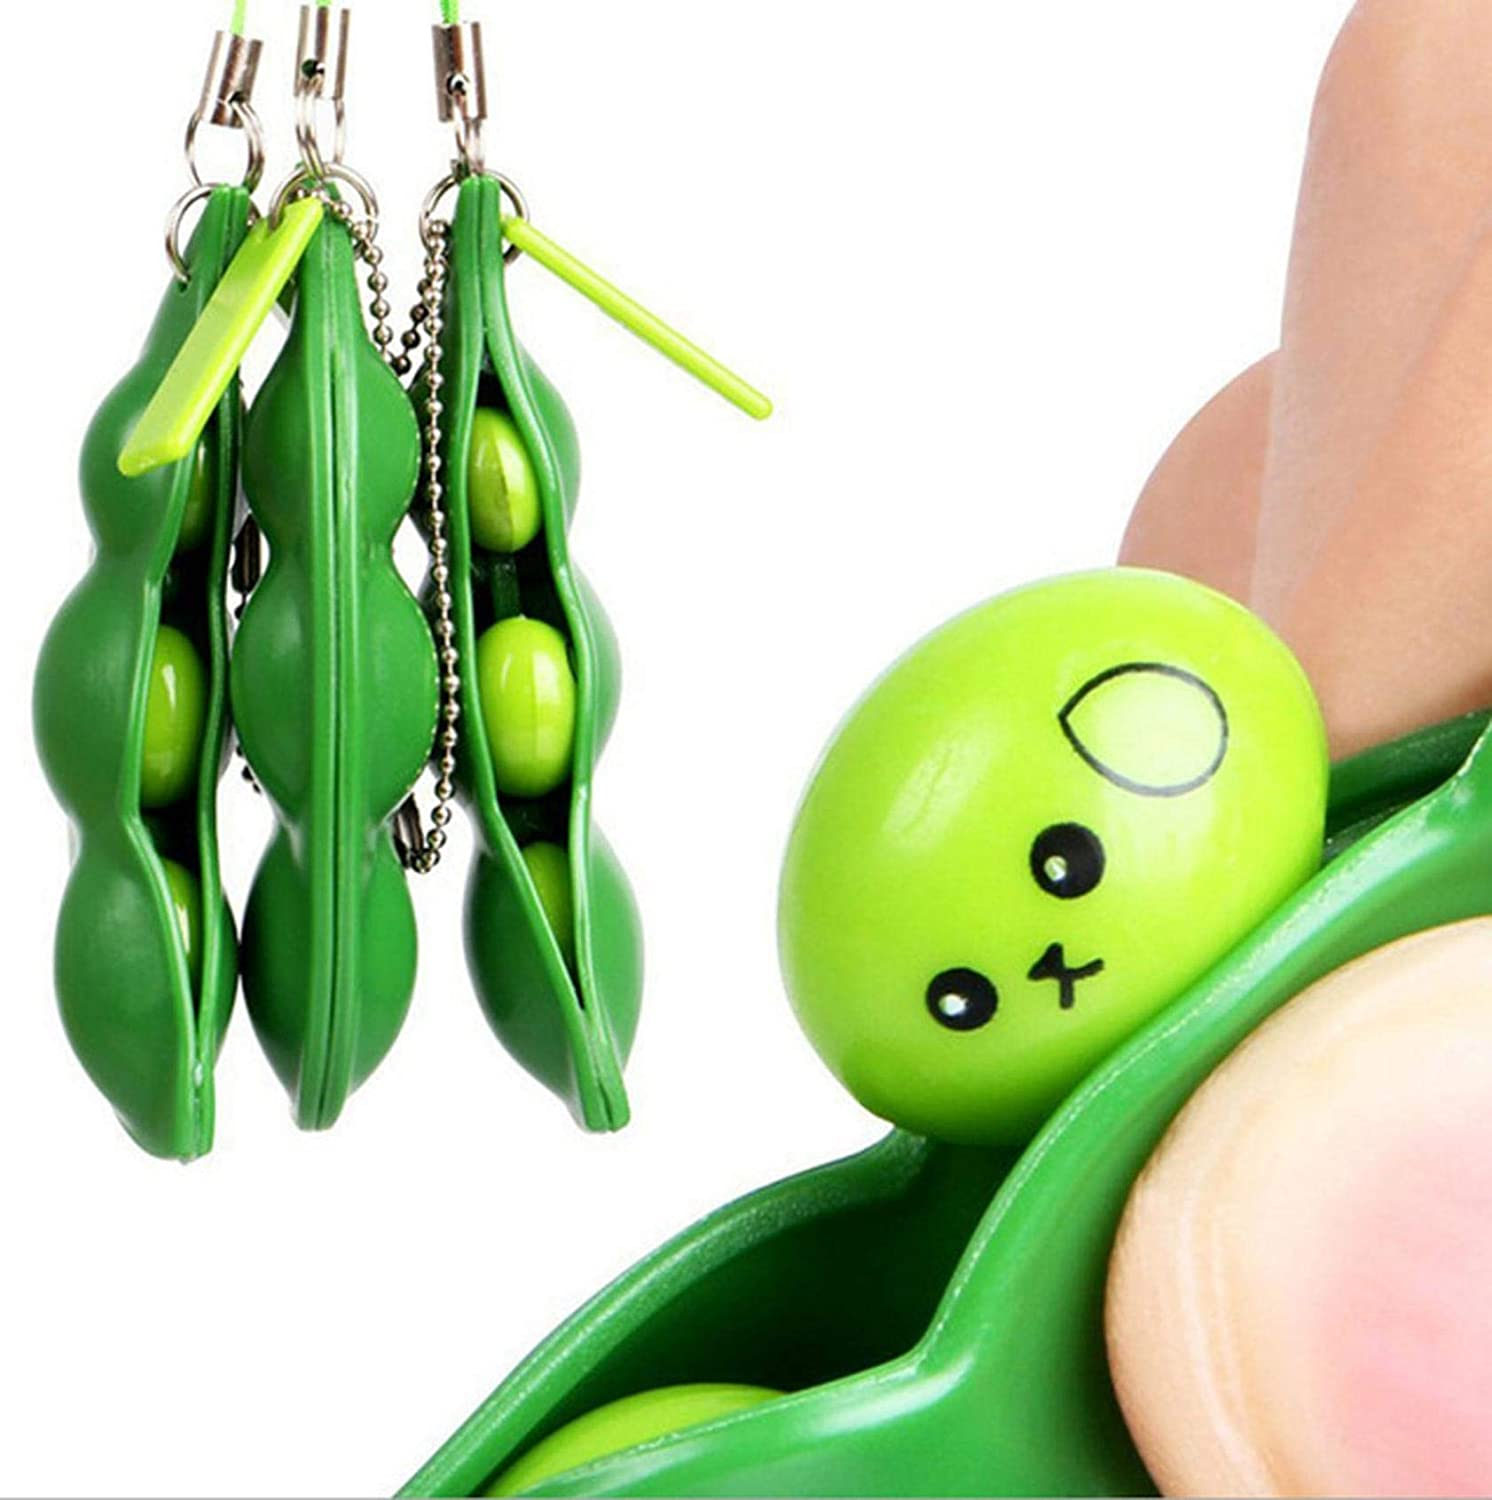 PHUNAPY Bean Stress Toy 1 Pack, Stress Relief Toy for Kids Adults Teens Relieve Anxiety & Autism, Toys to Improve Focus Keychain Accessories, Funny Facial Expression Soybean Stress Toy (1 PC)